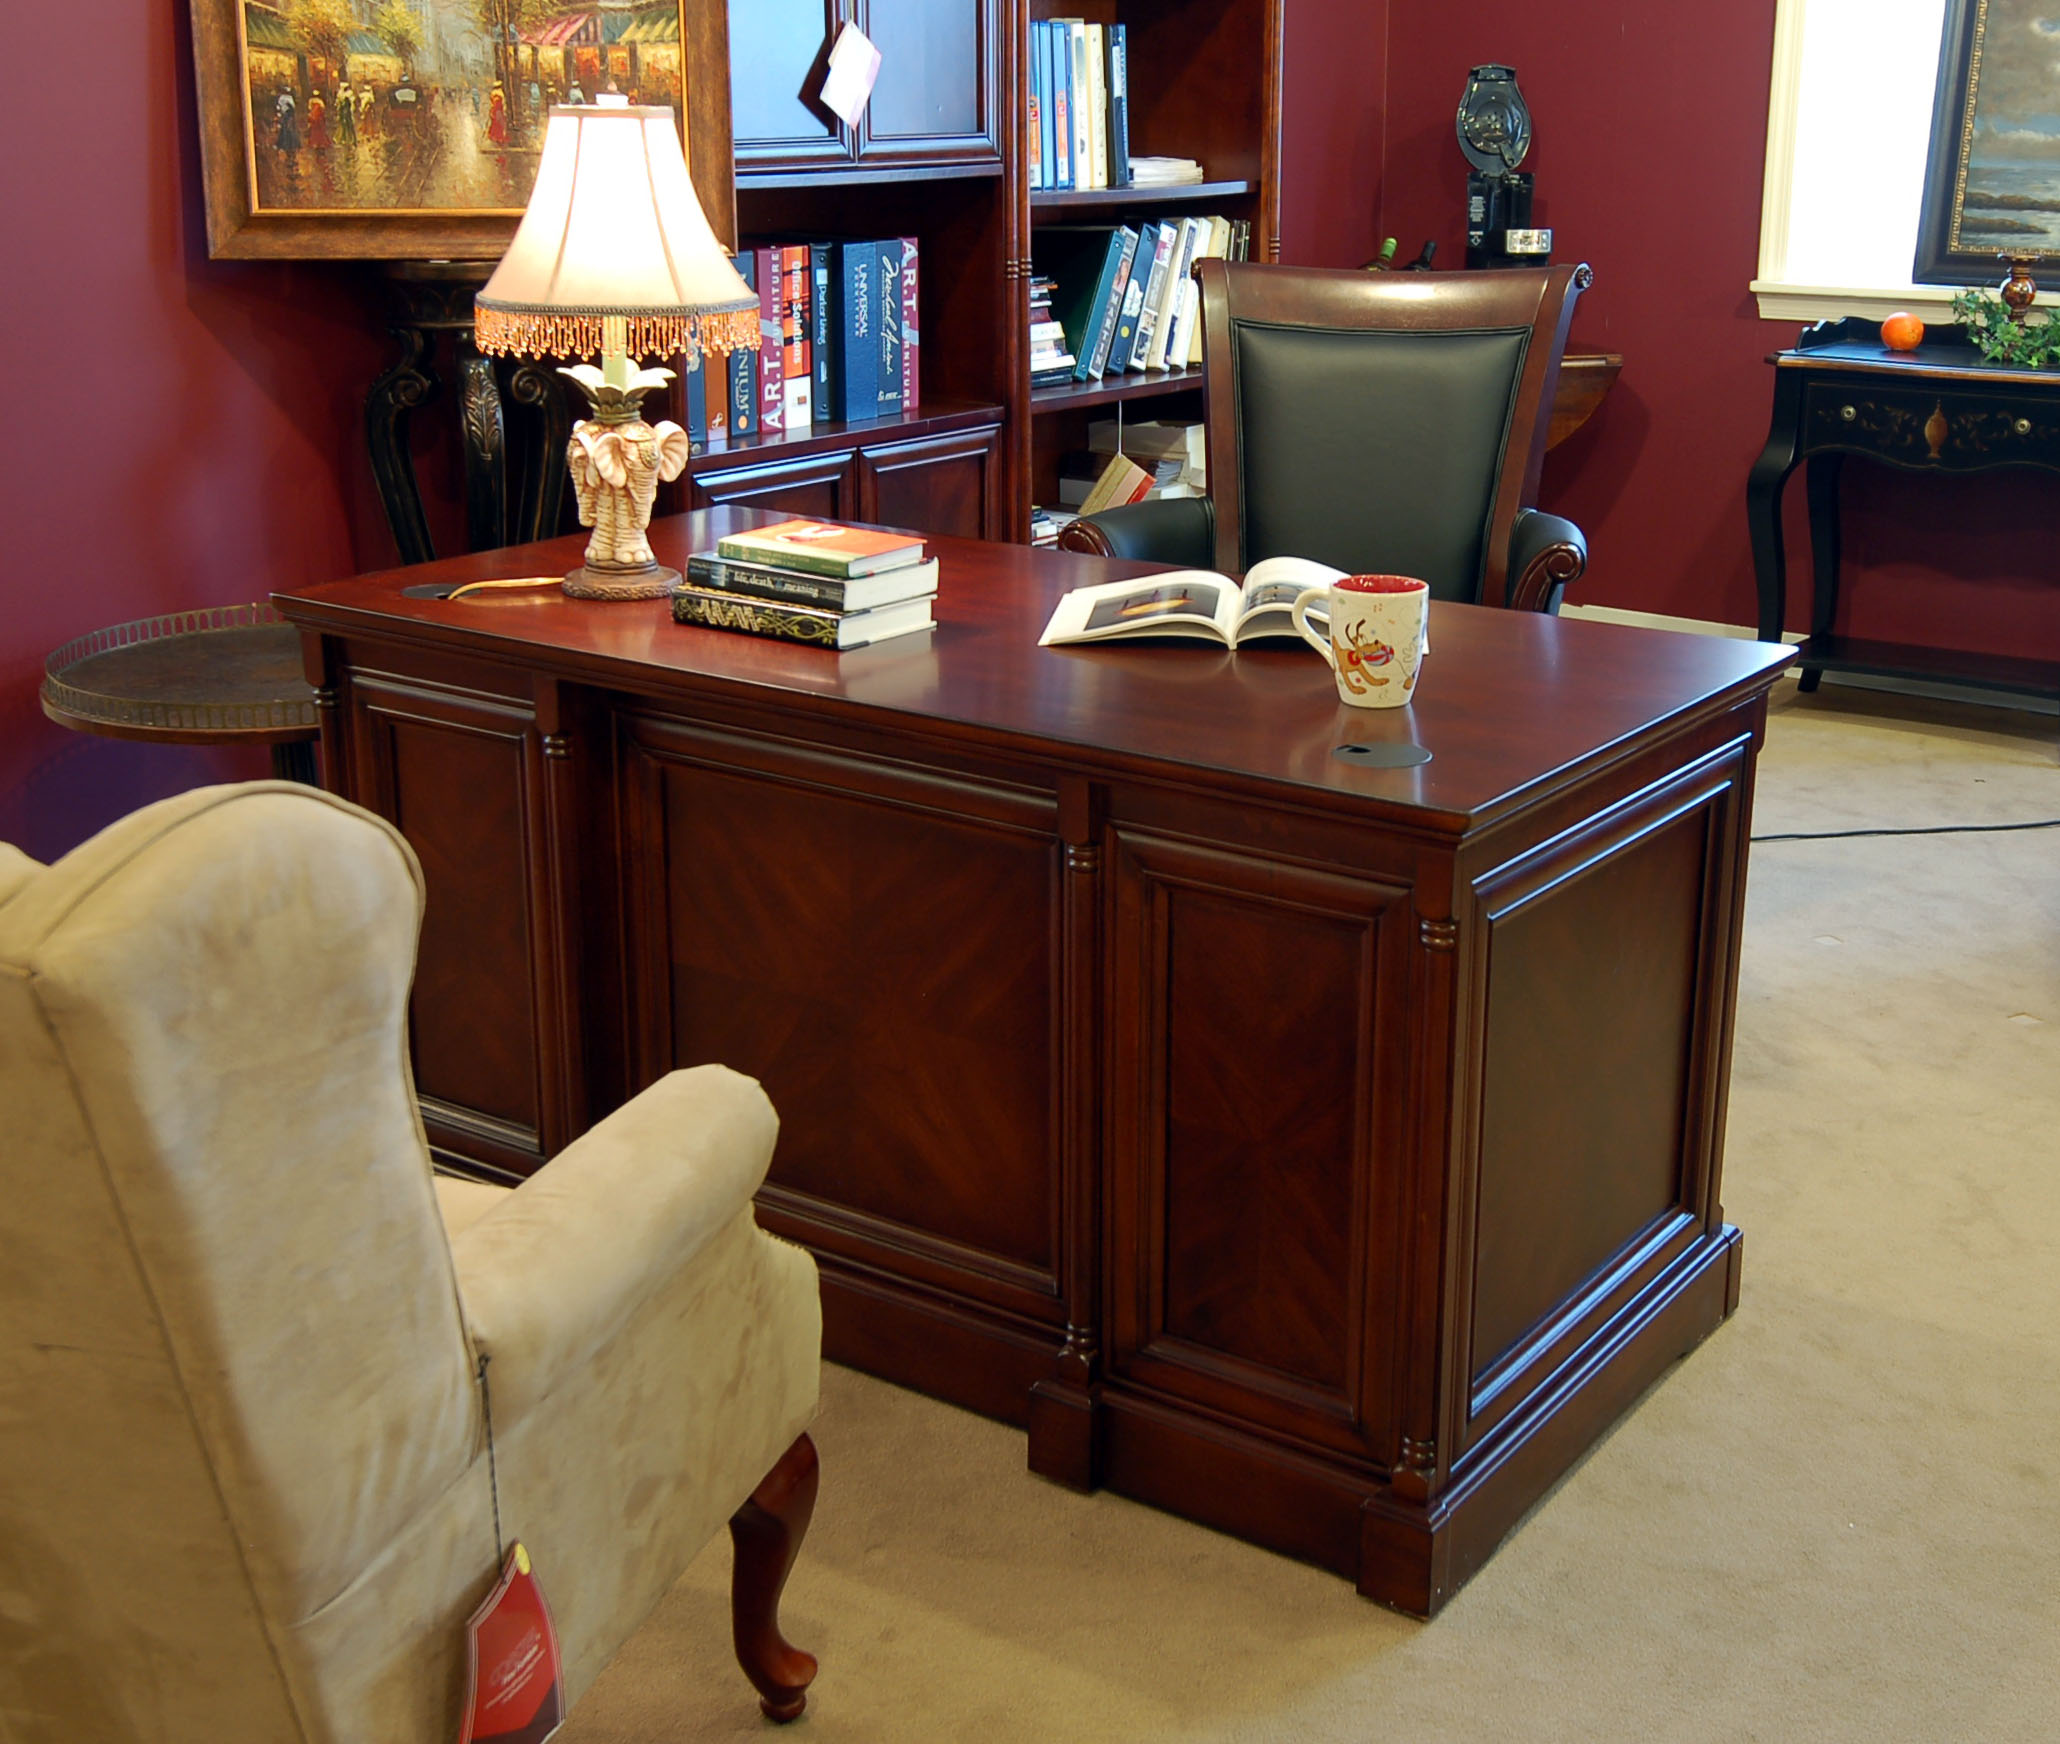 Executive office desk - Space Saver Executive Office Desk Enrich Your Office With The Space Saver Executive Office Desk Conveniently Crafted With Two Locking File Drawers